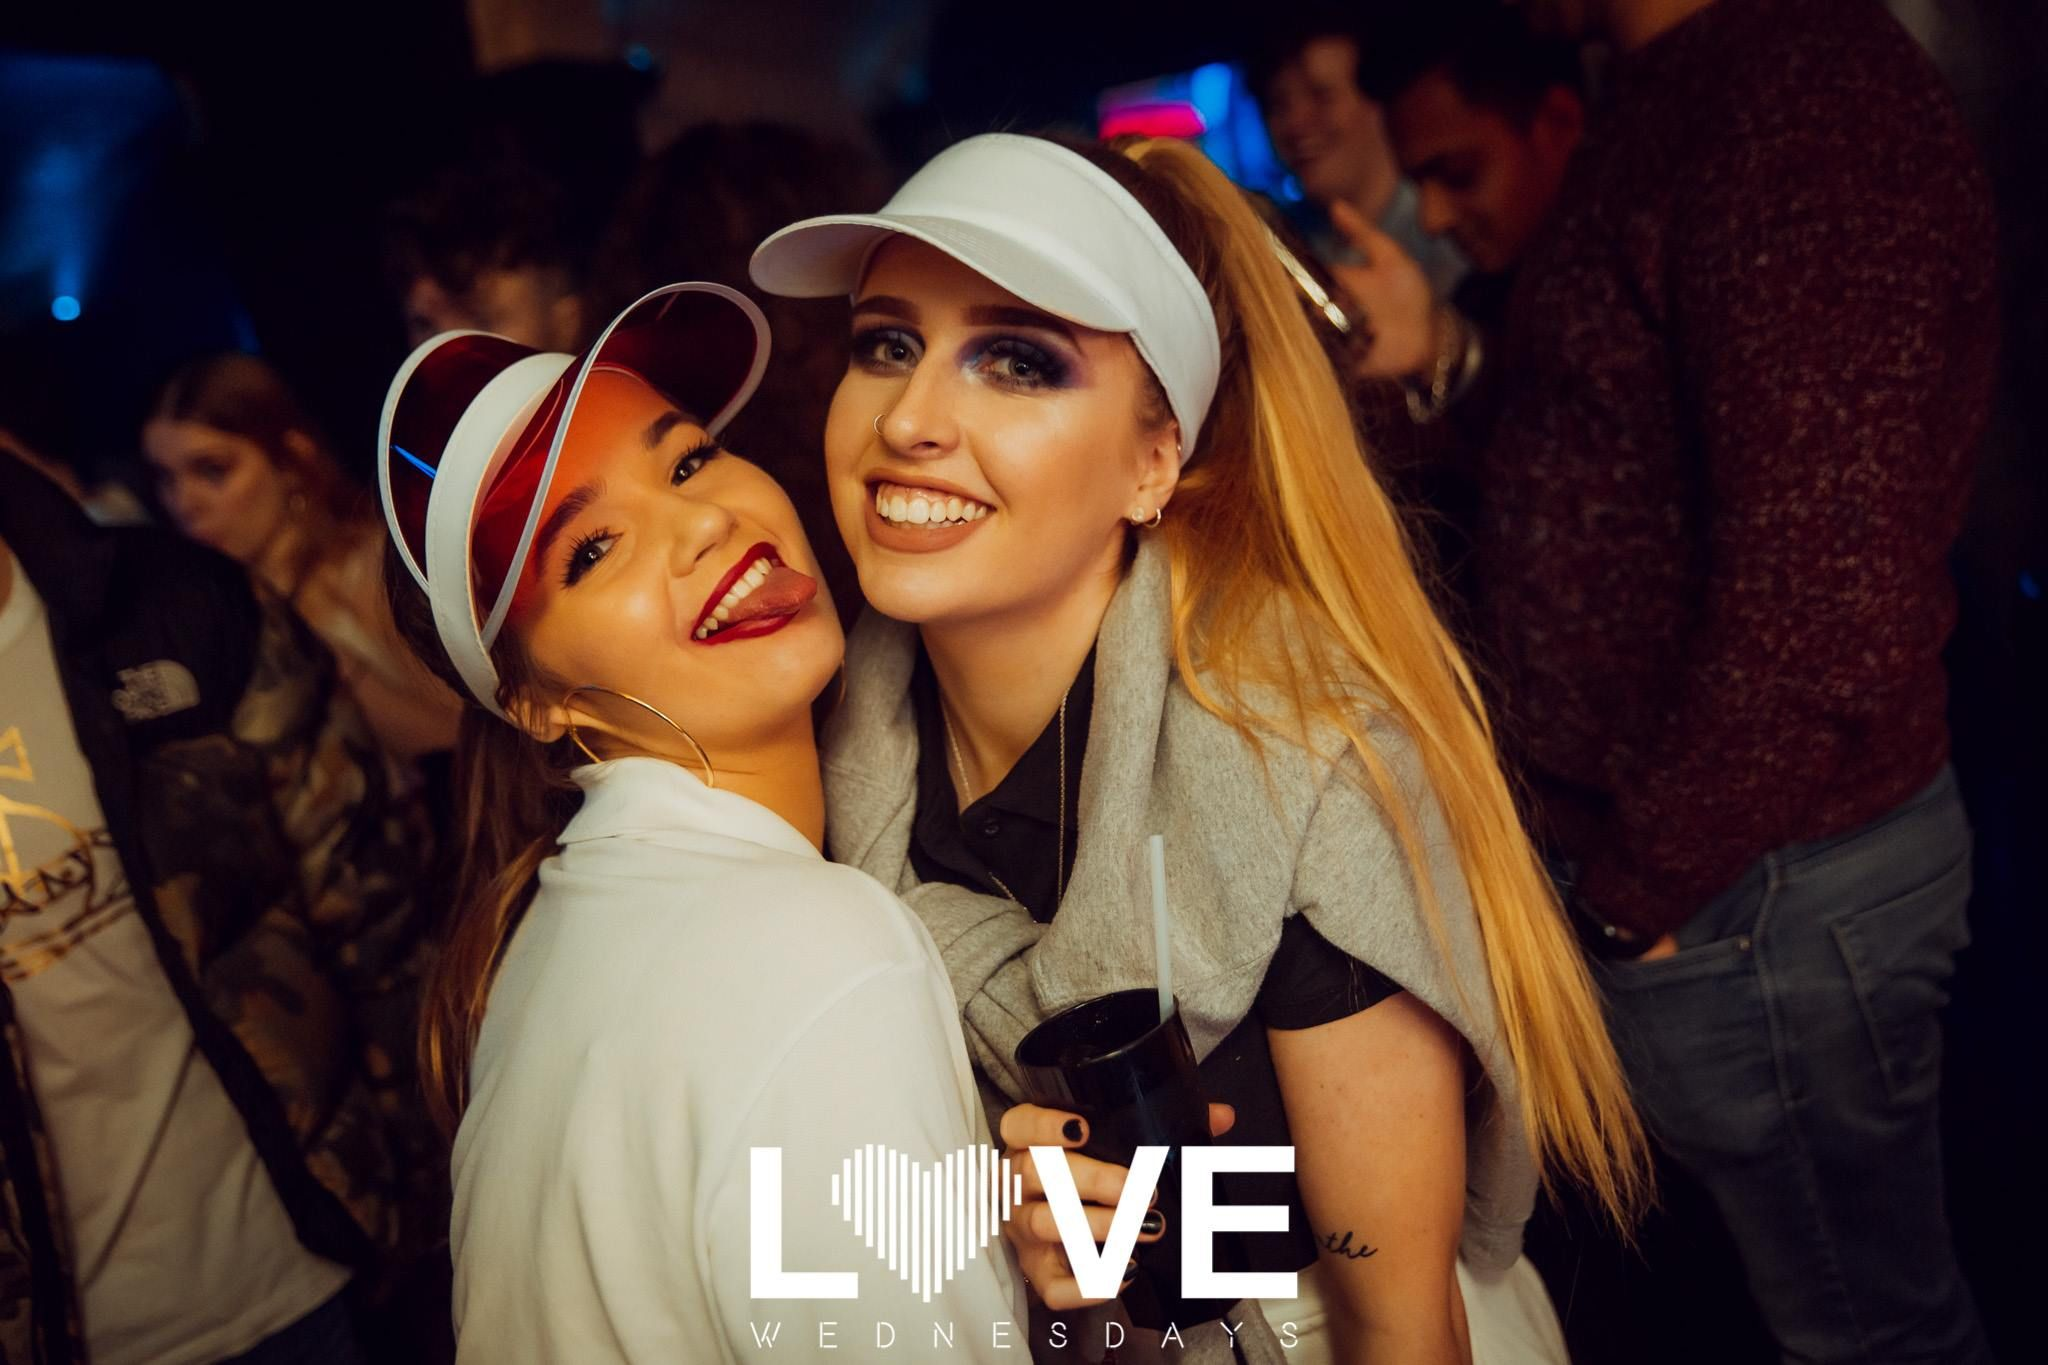 Image may contain: Dating, Face, Sunglasses, Accessory, Accessories, Night Life, Party, Clothing, Apparel, Hat, Night Club, Club, Human, Person